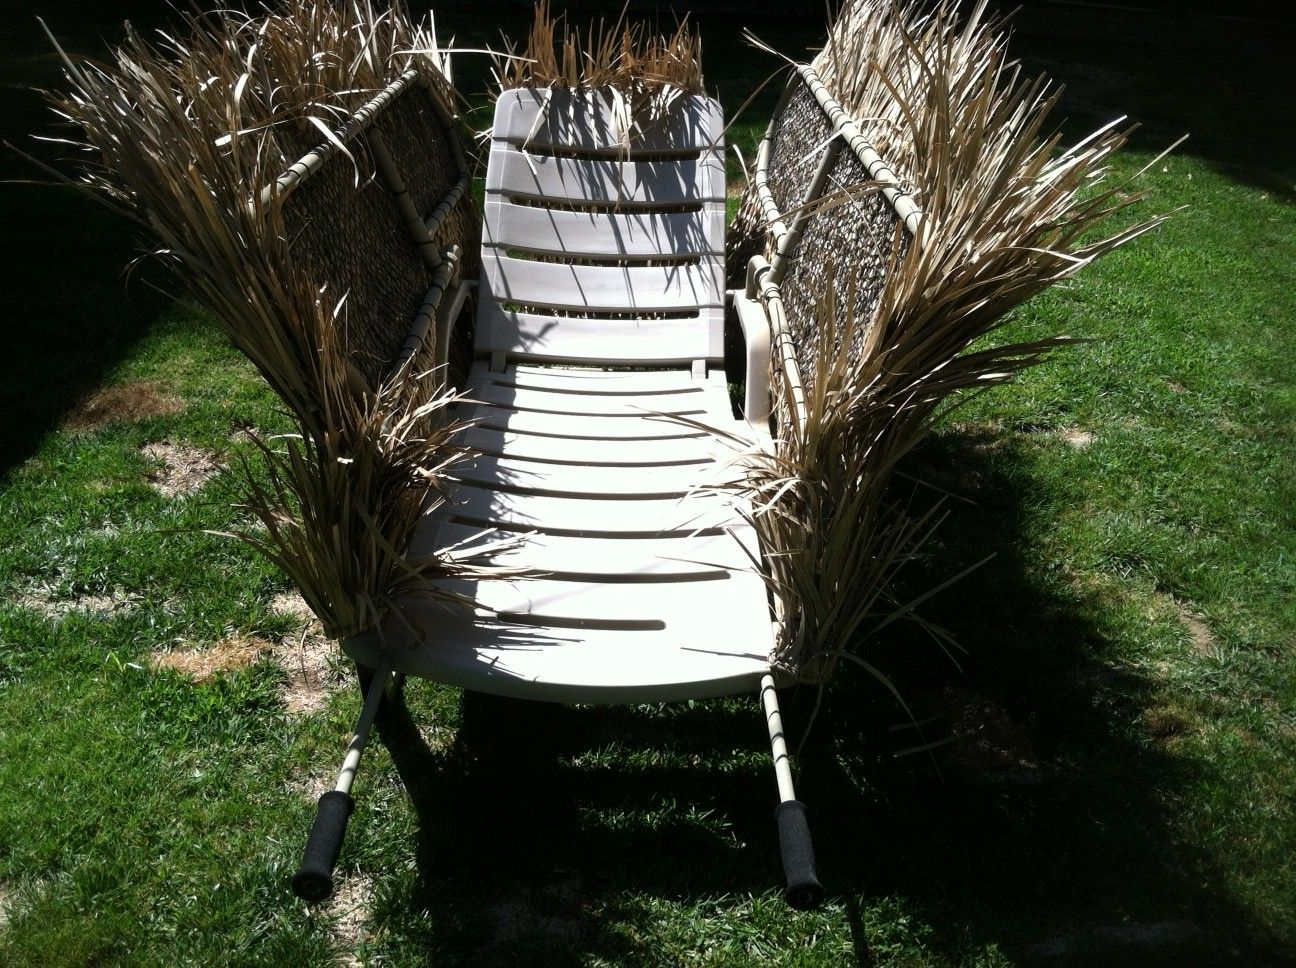 Genius Lounge Chair Outfitted With Grassy Camo Upland Bird Hunting Duck Hunting Waterfowl Hunting